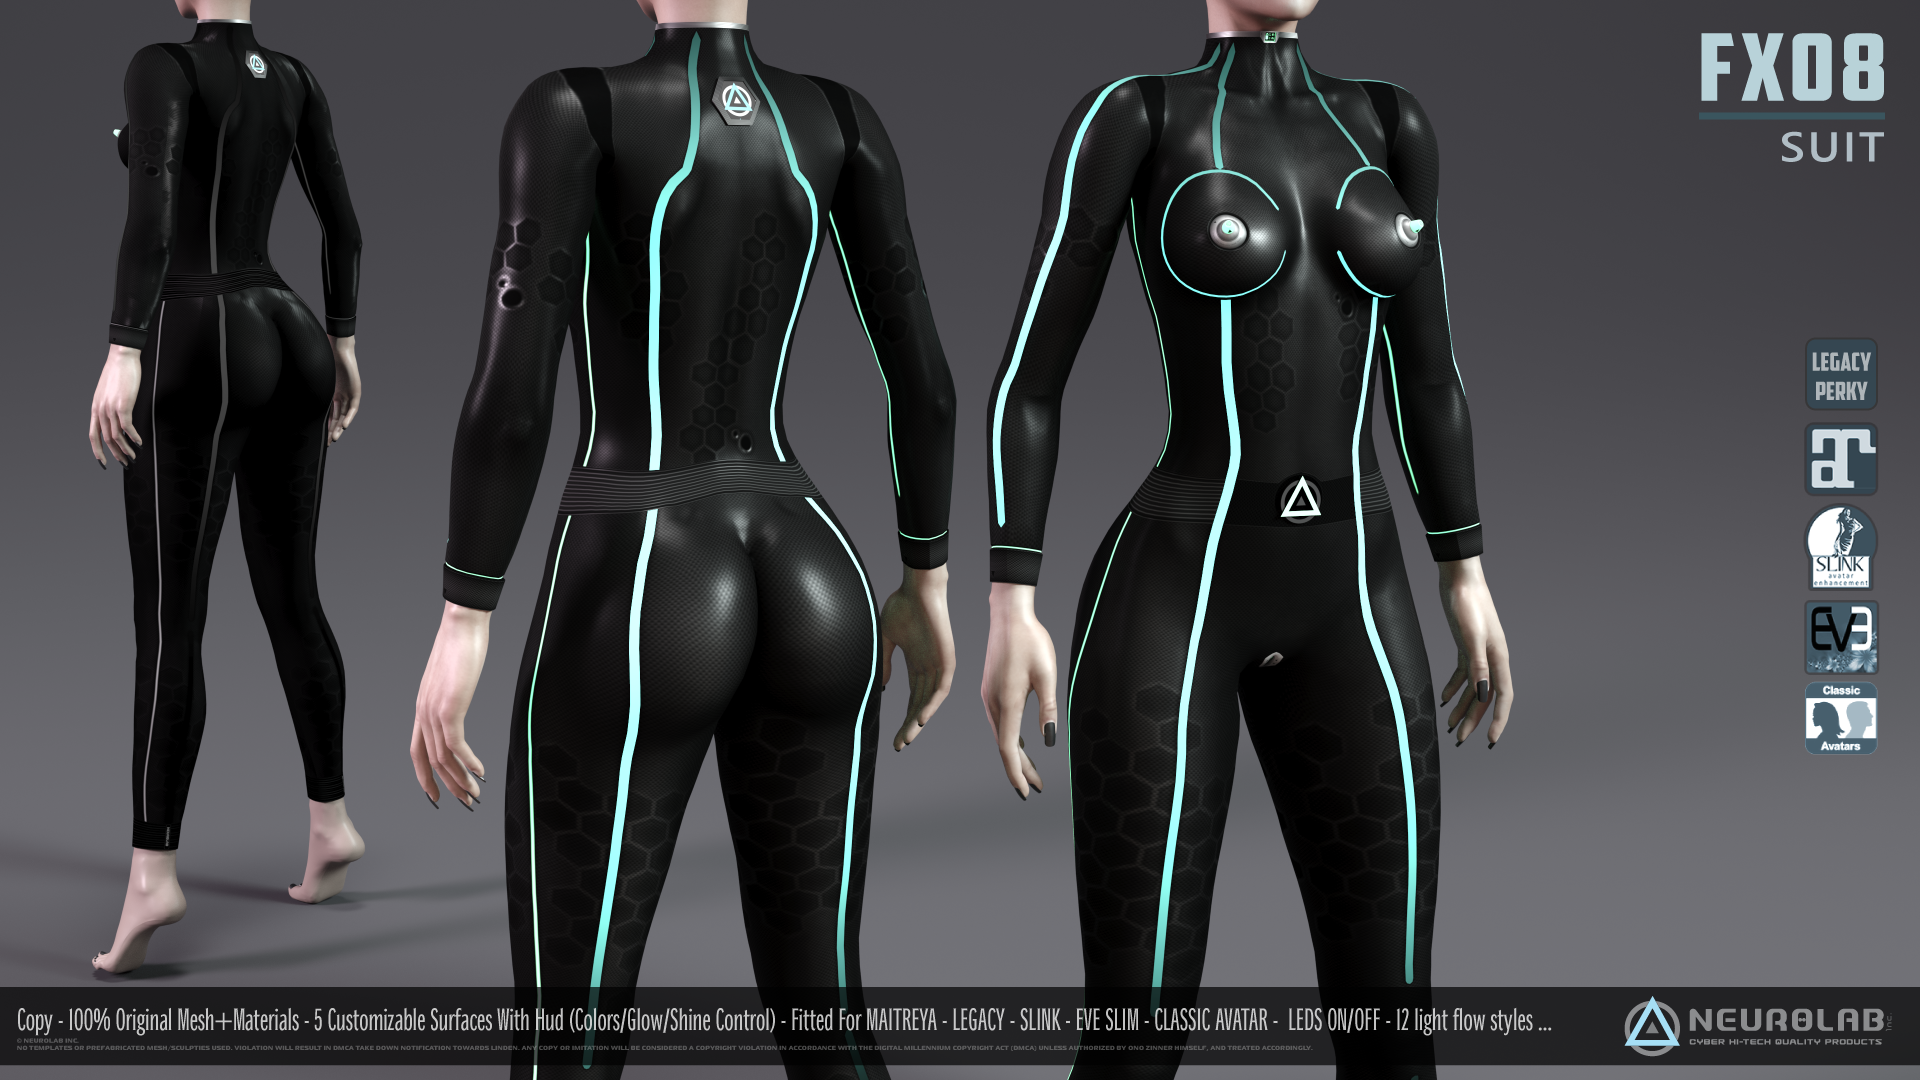 FX08 CatSuit for Women (FITTED) [1.6] *Update*